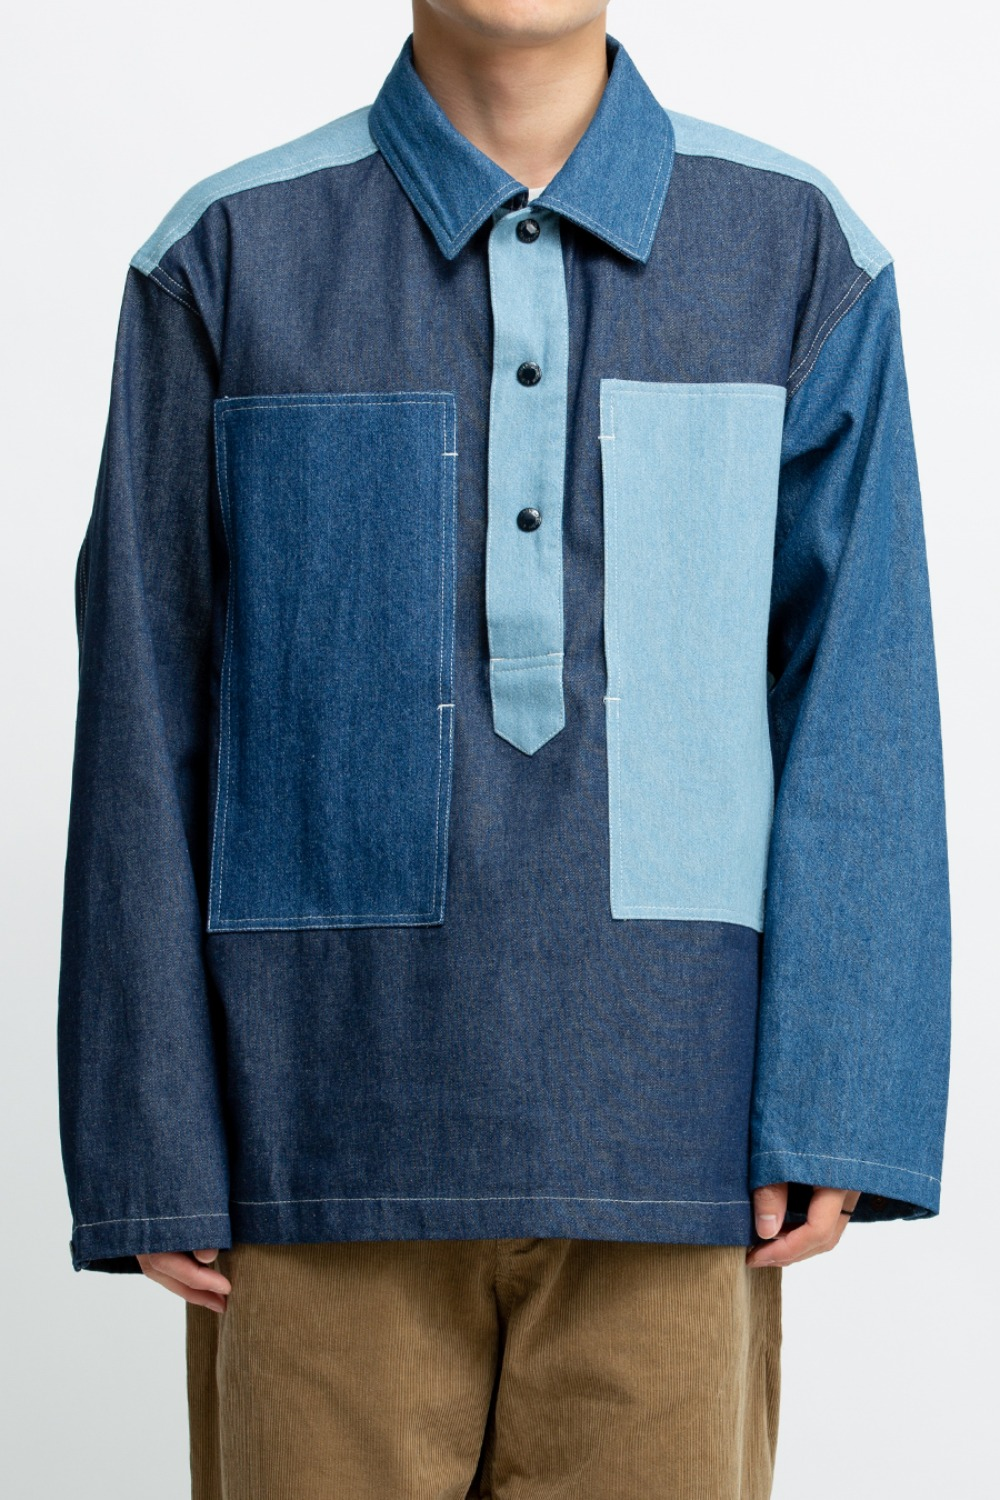 ARMY SHIRT COMBO INDIGO 8OZ DENIM